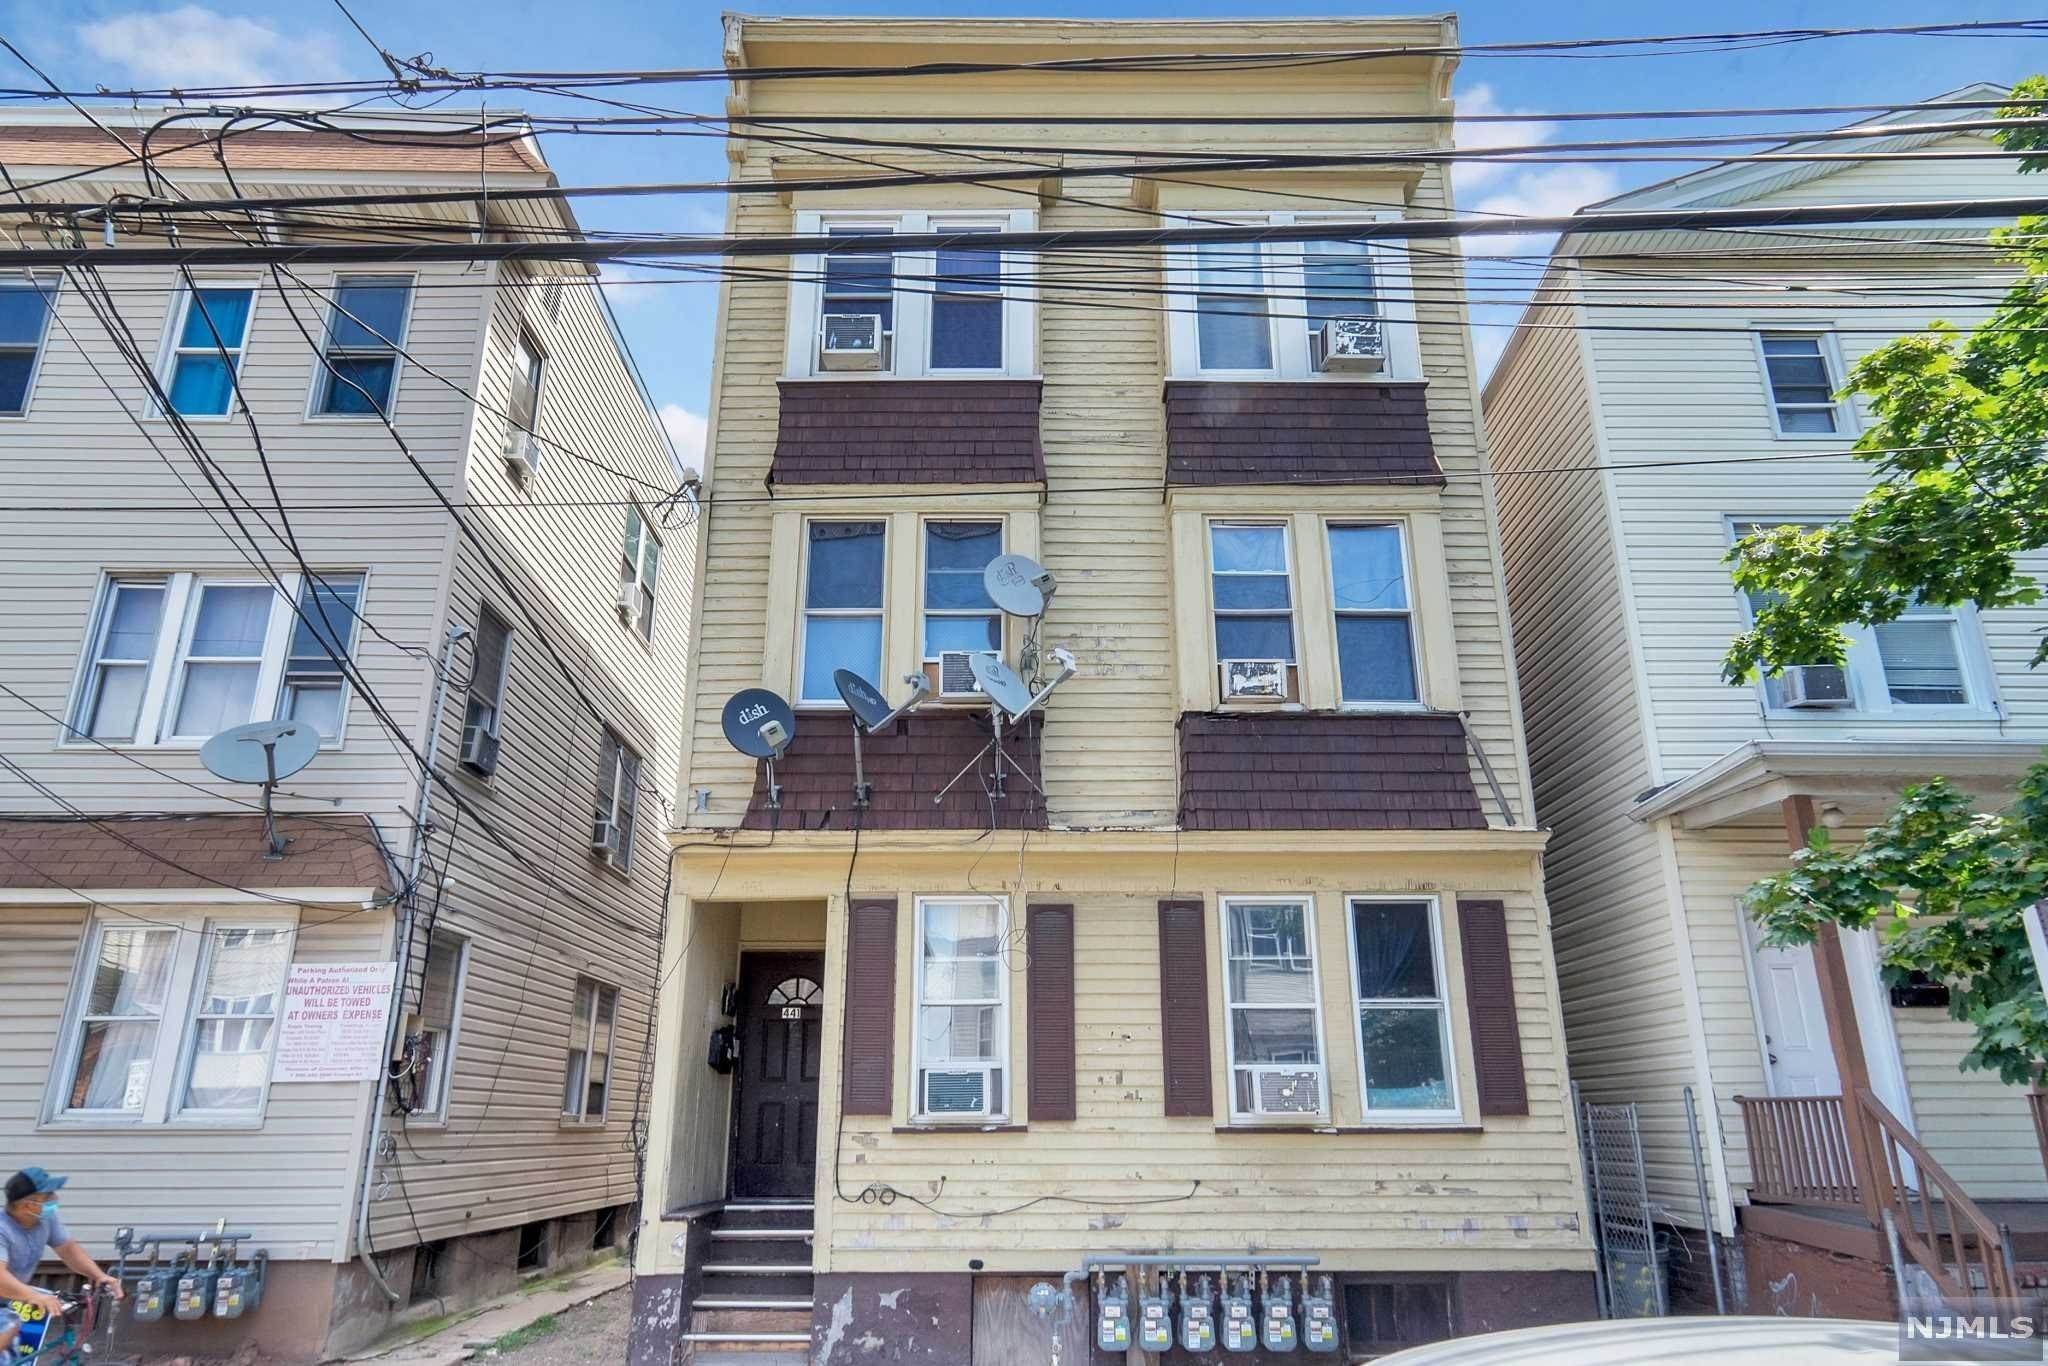 Commercial / Office for Sale at 441 Marshall Street Elizabeth, New Jersey,07206 United States